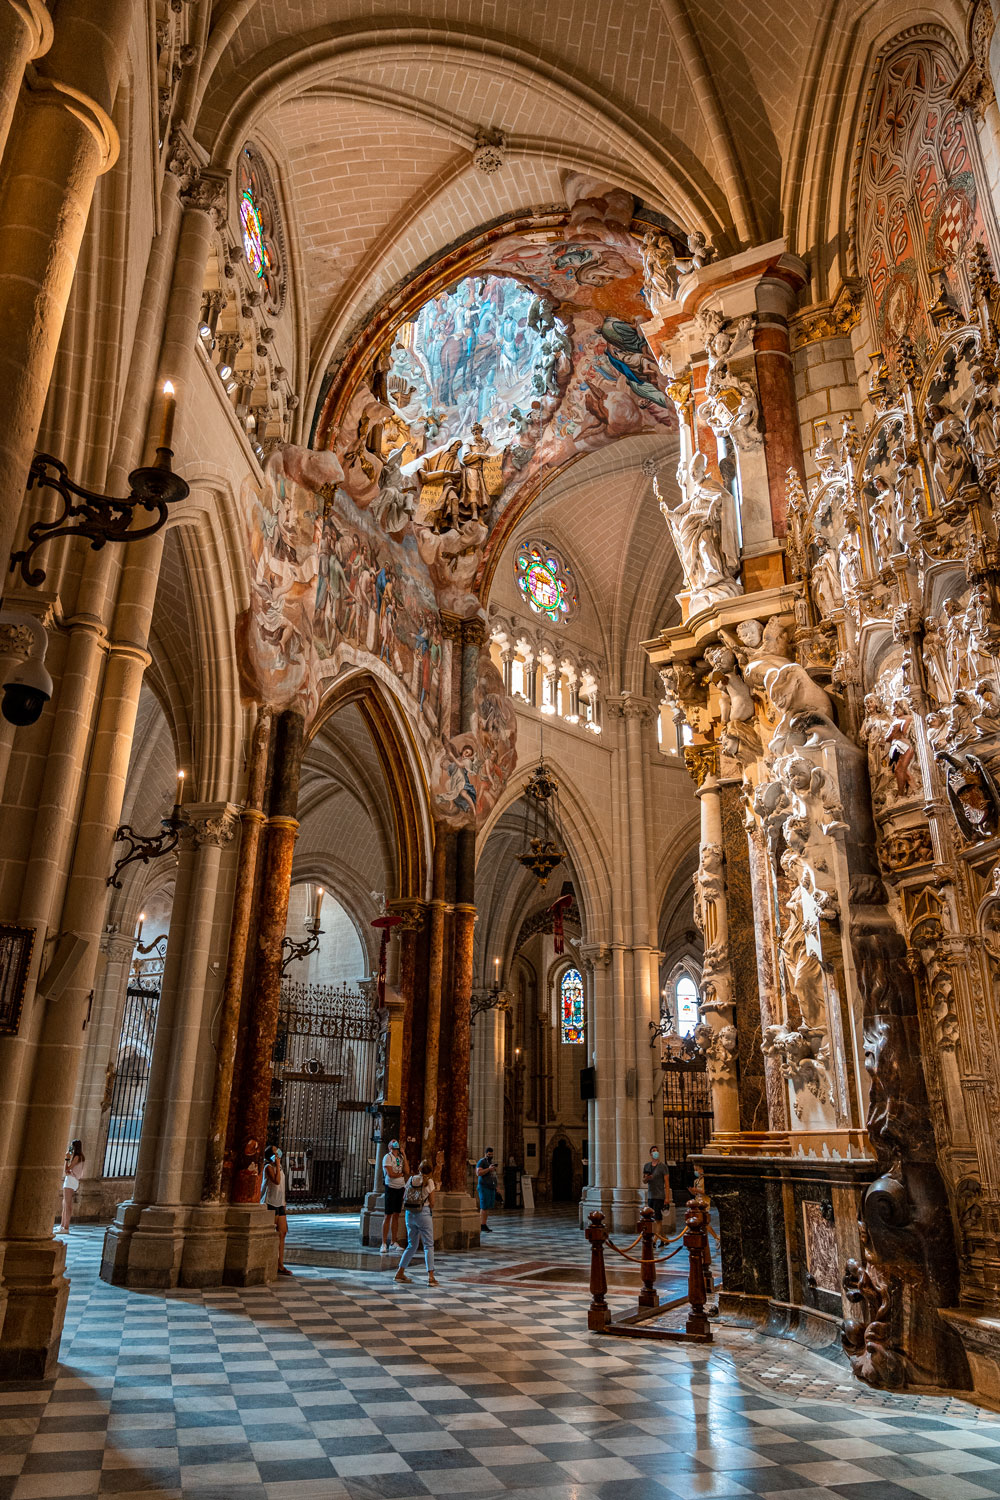 Powerful view of the Toledo Cathedral interior